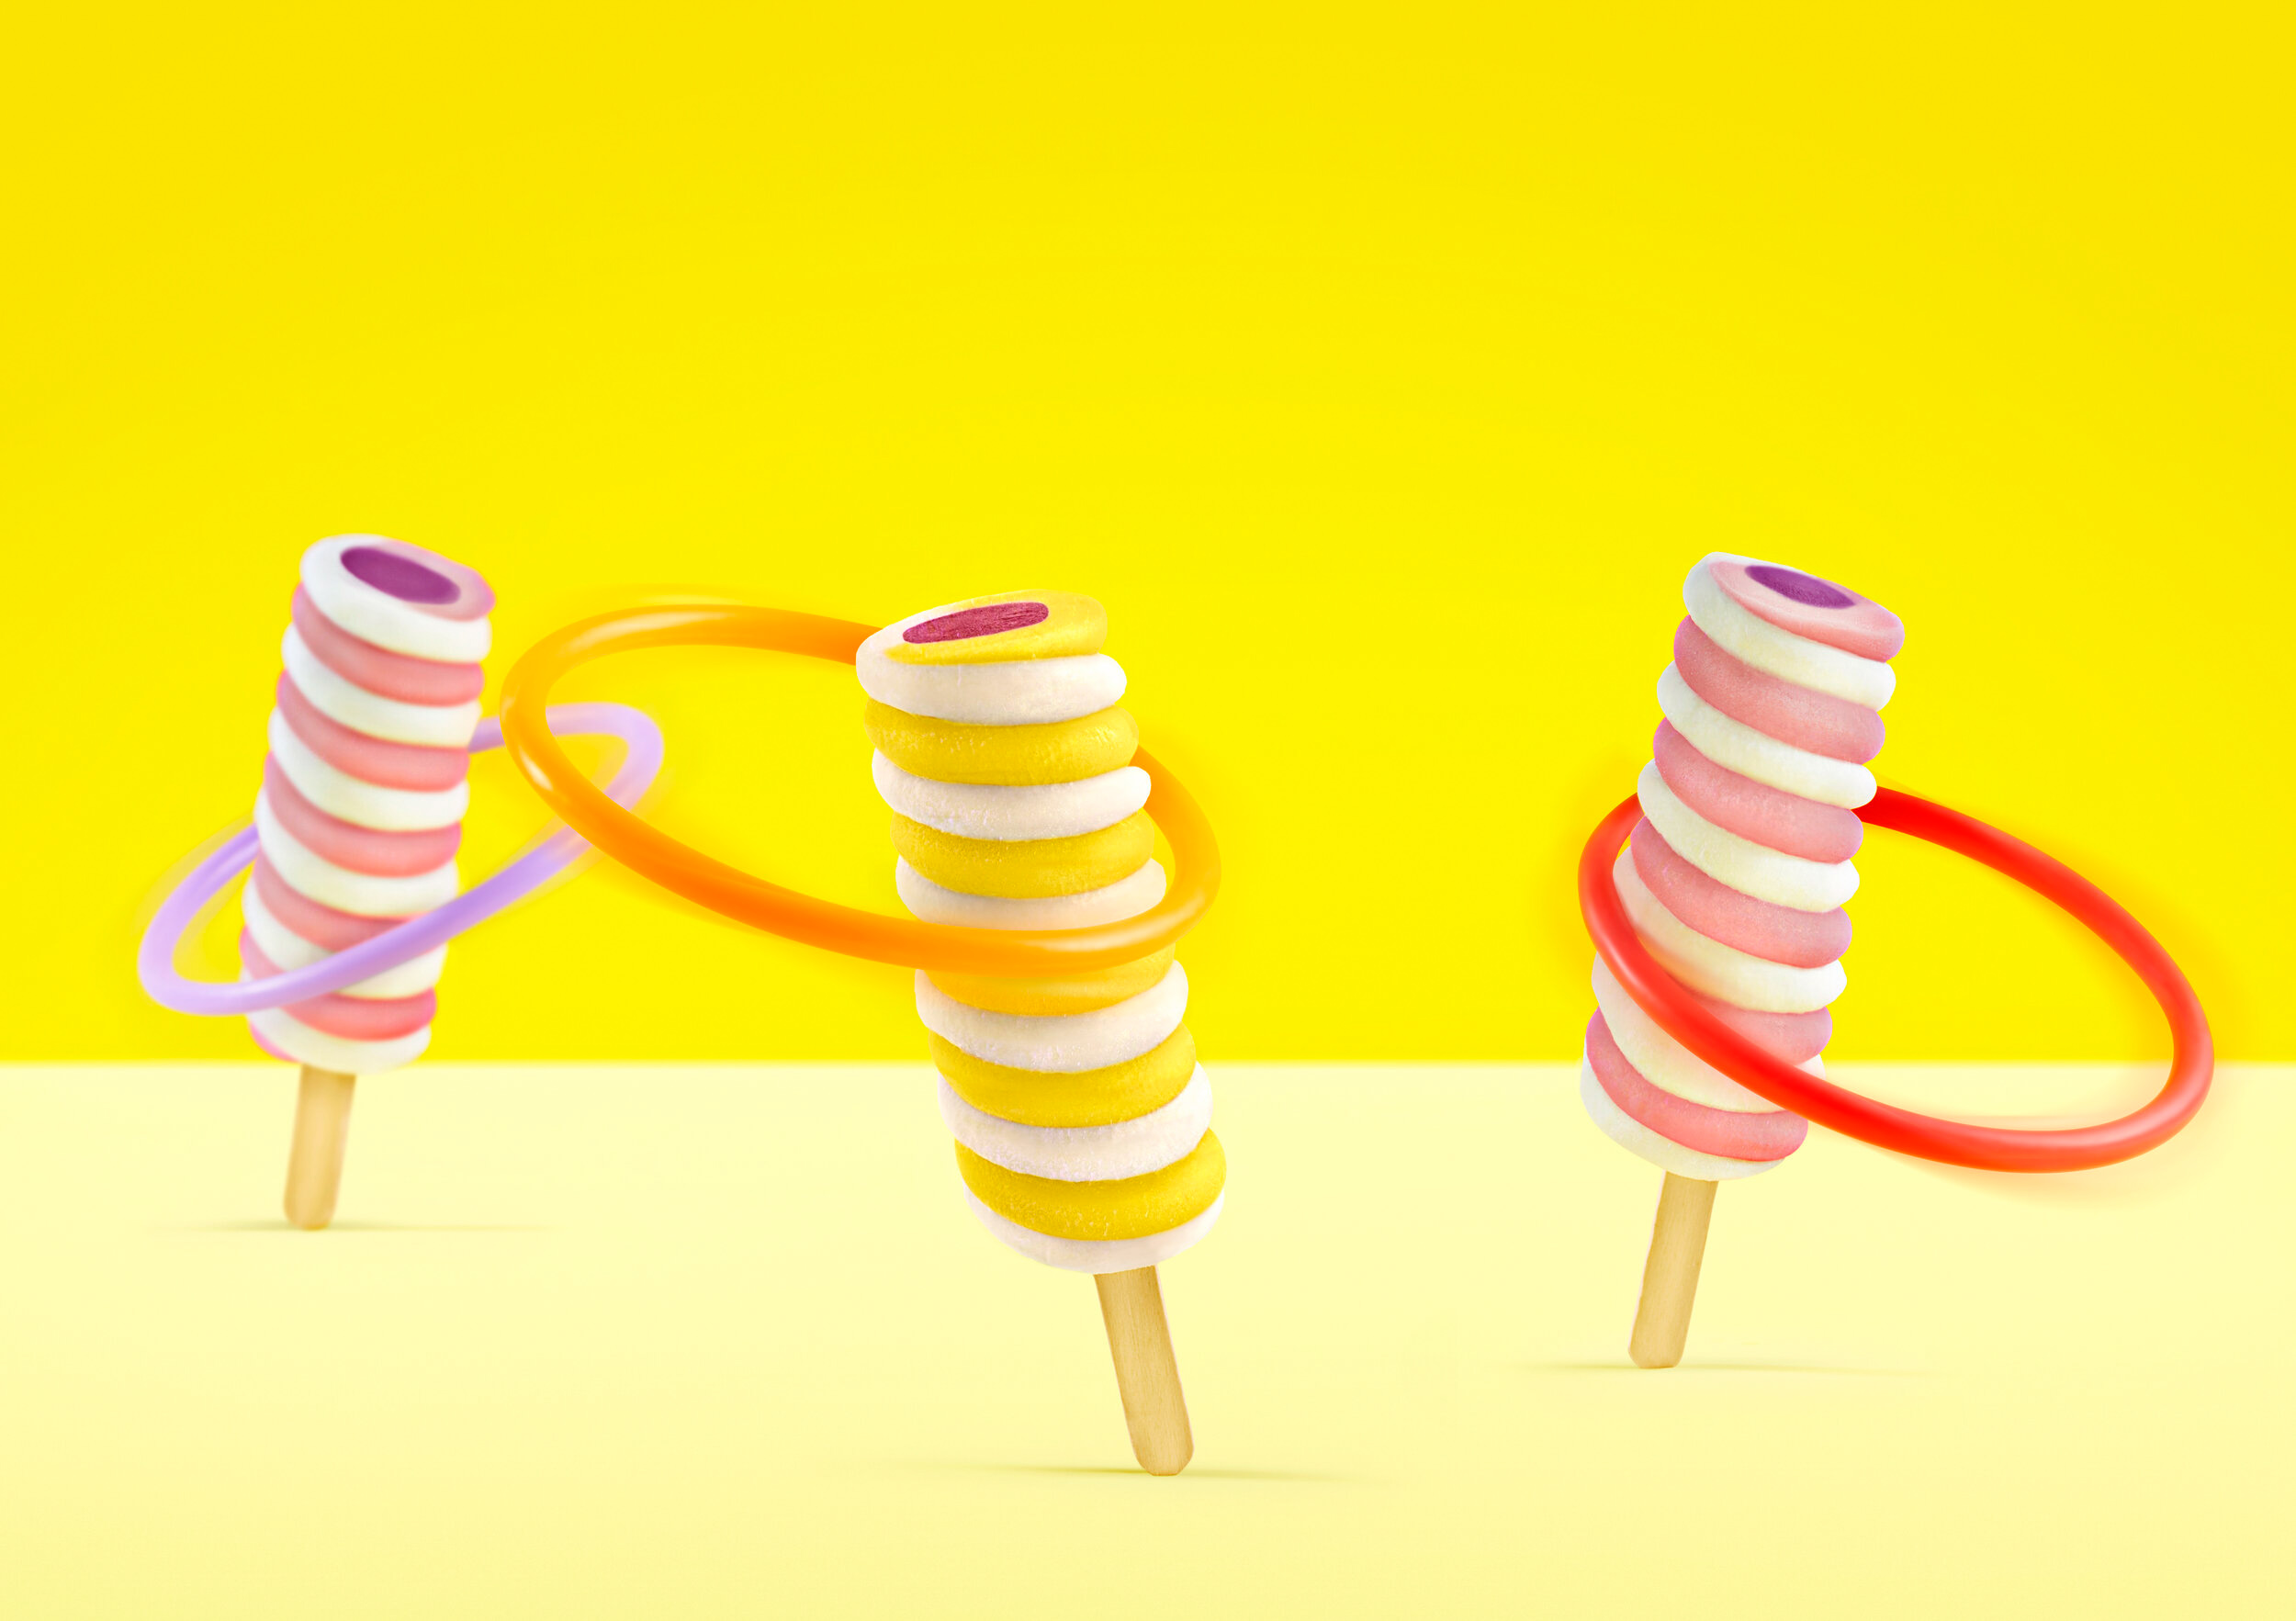 dominic-perri-new-work-unilever-popsicle-hula-hoop